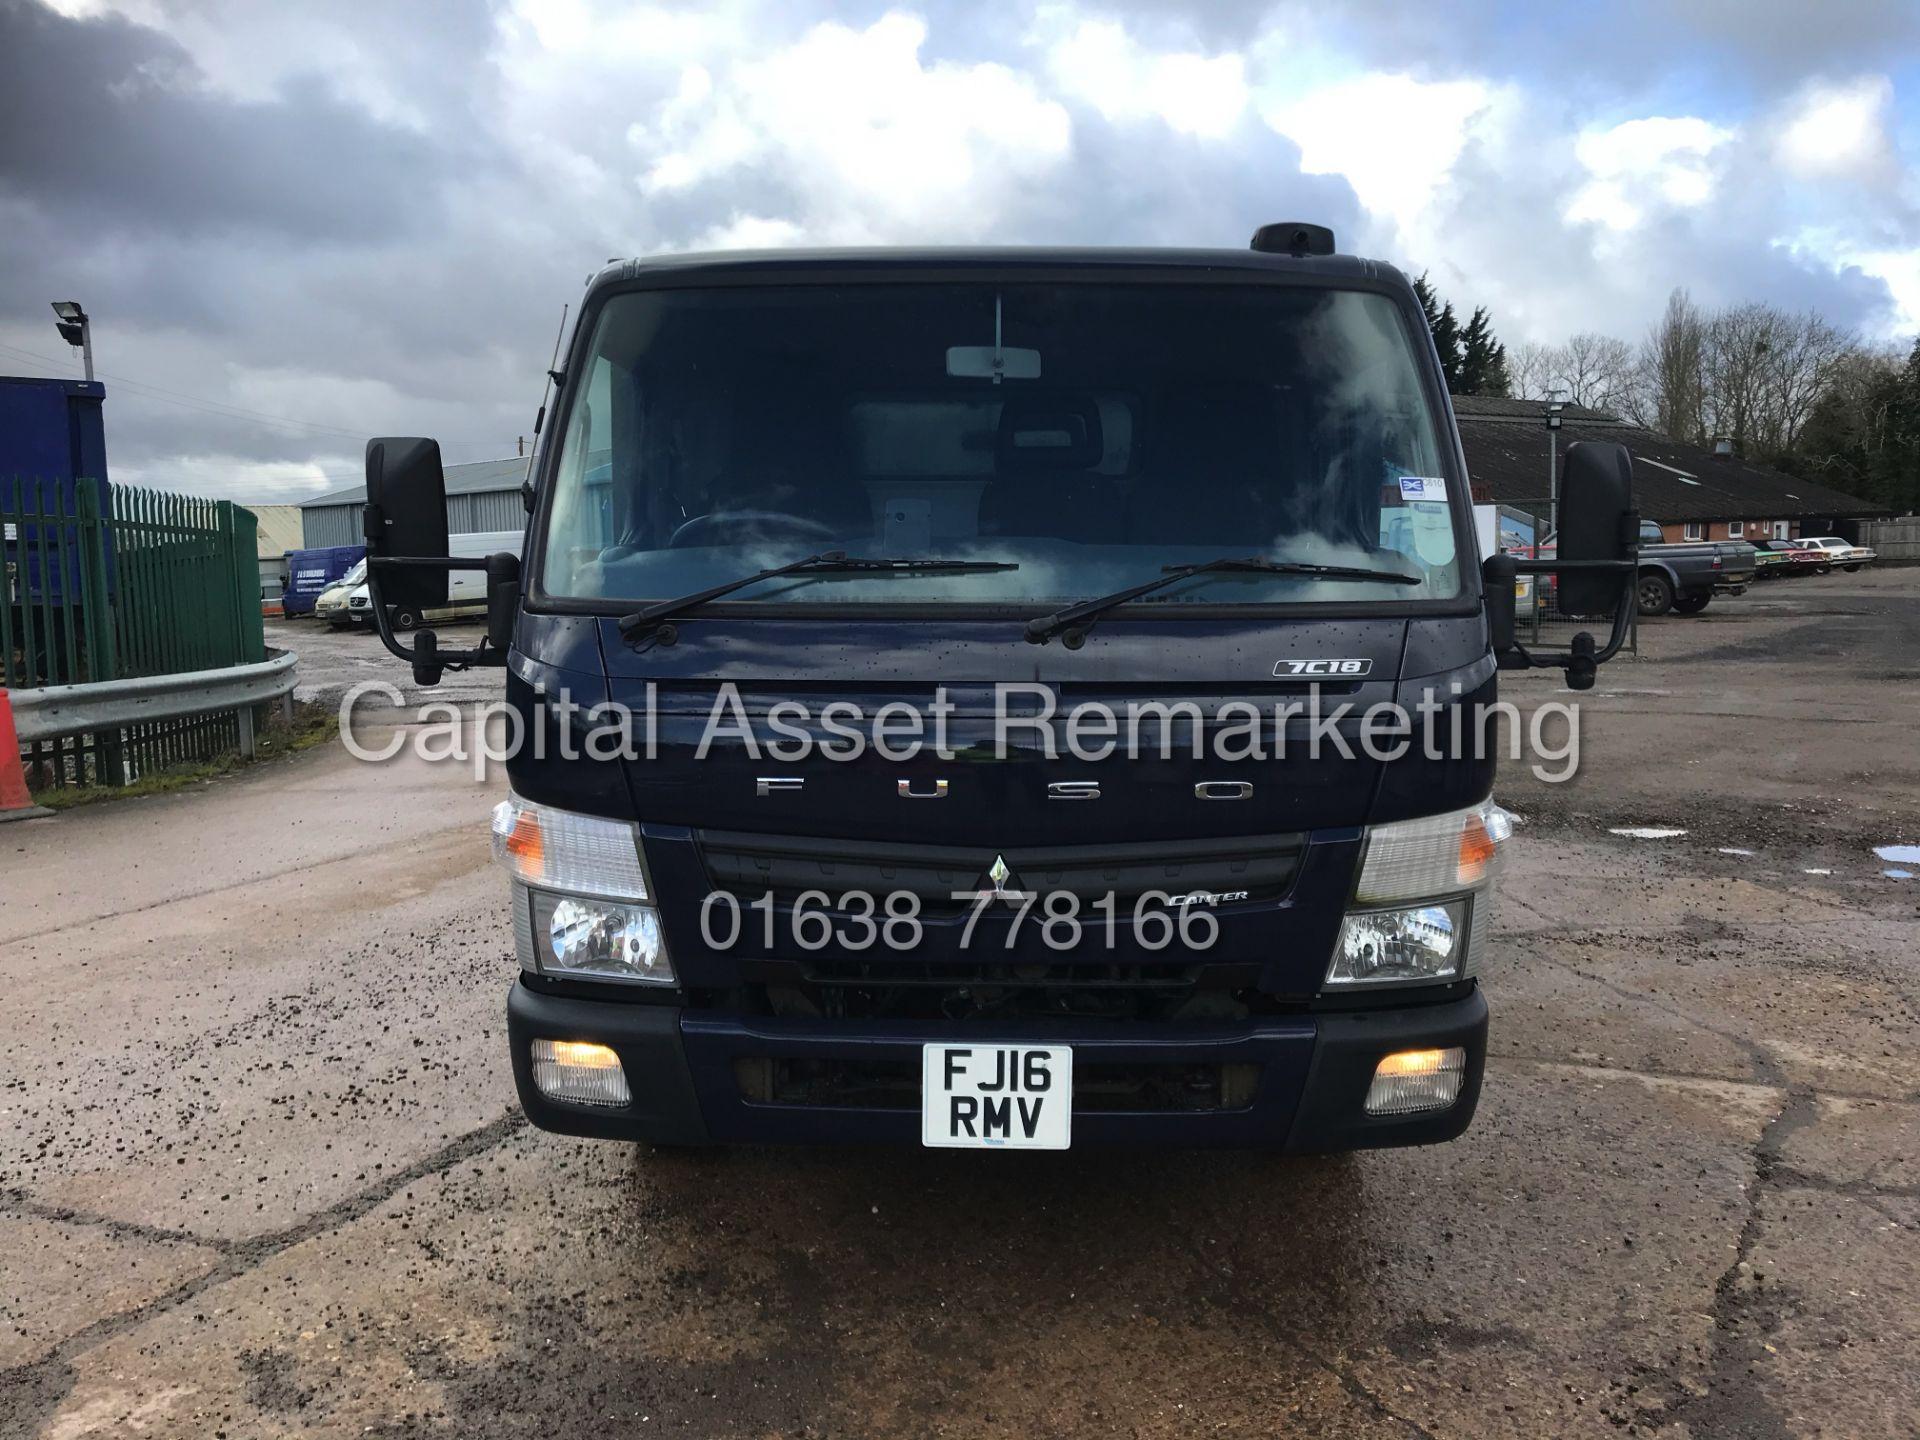 (ON SALE) MITSUBISHI FUSO CANTER 7C18 (16 REG) 1 OWNER *EURO 6* AD-BLUE - 4 WAY CAMERA SYSTEM - Image 4 of 20